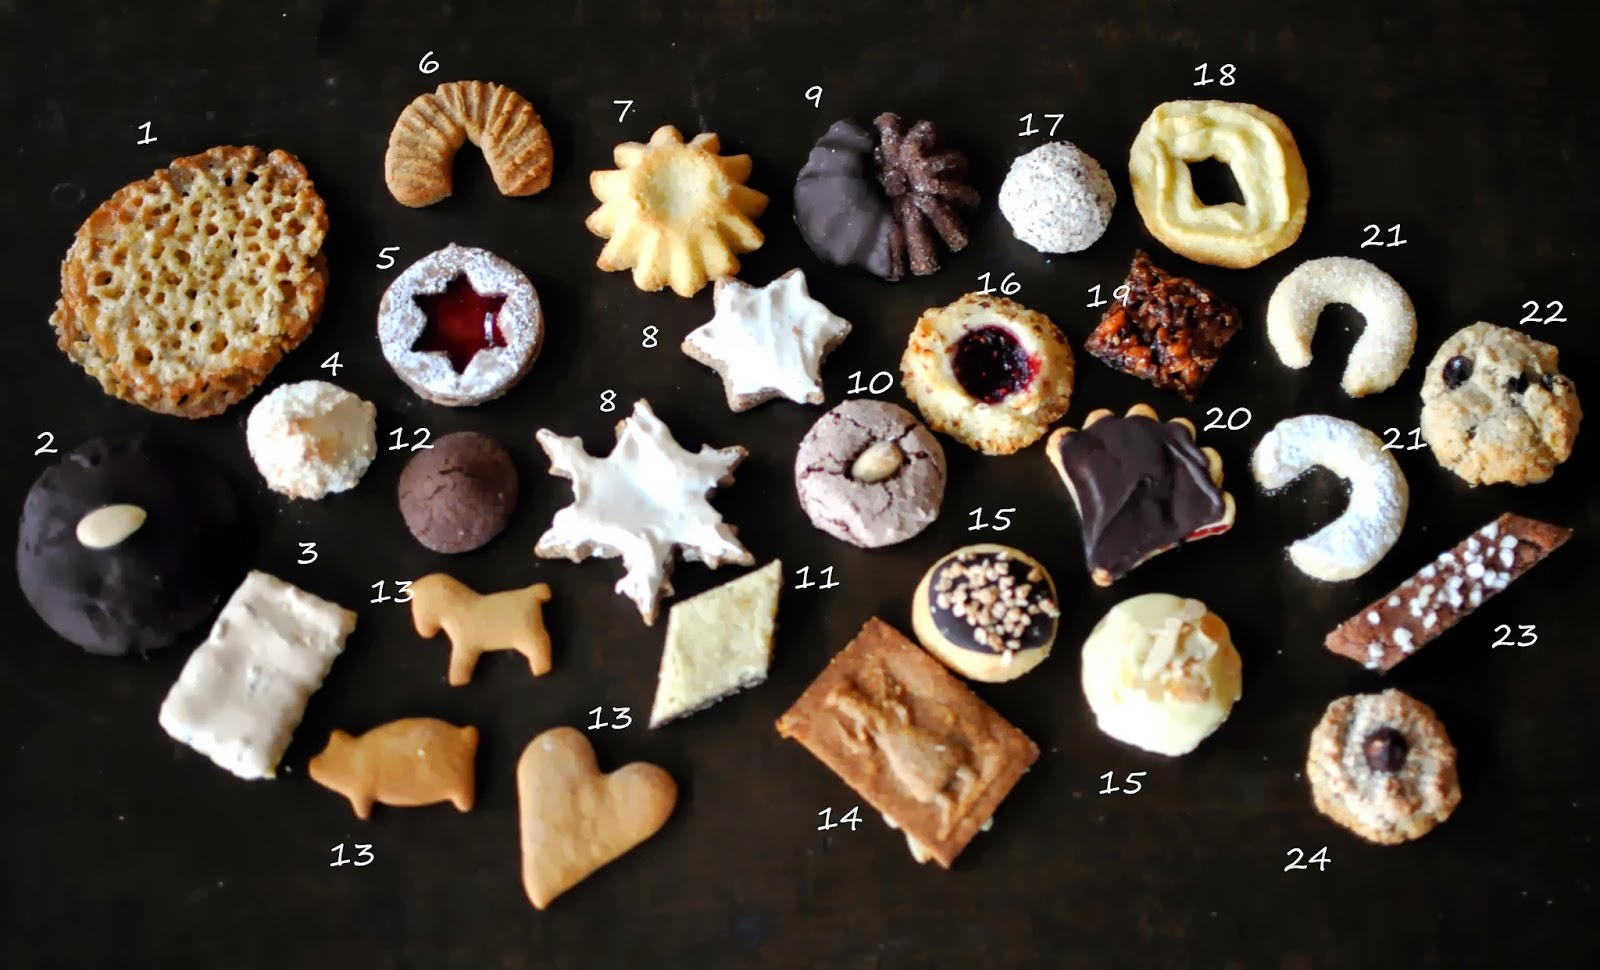 Confirm. All Austrian christmas cookies